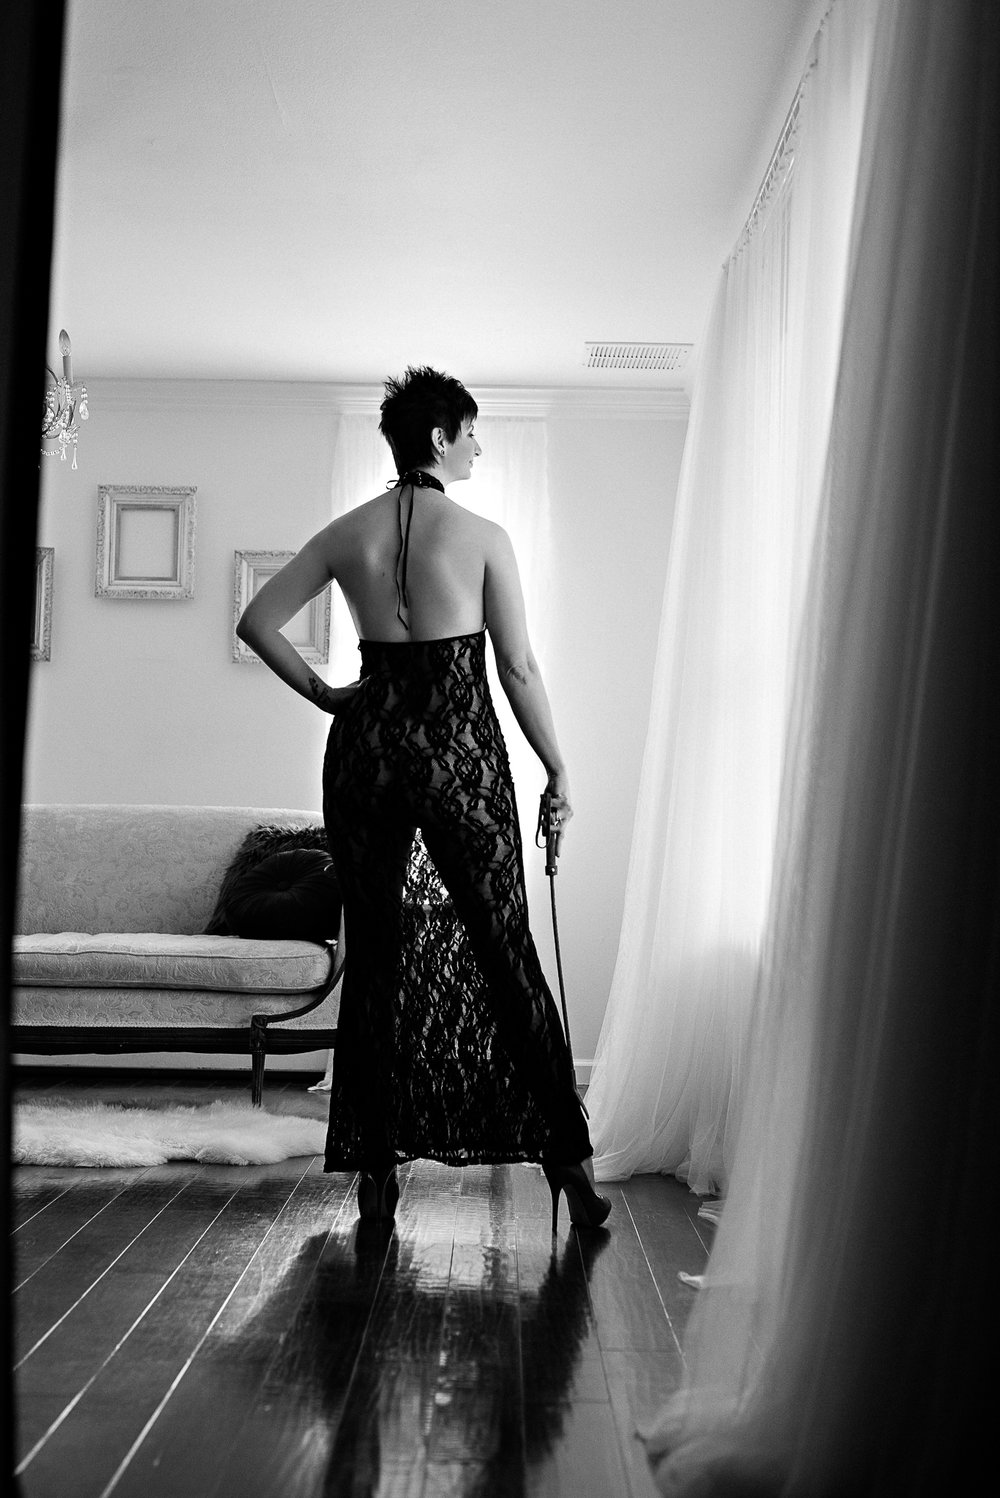 Empowered woman Denver boudoir photoshoot